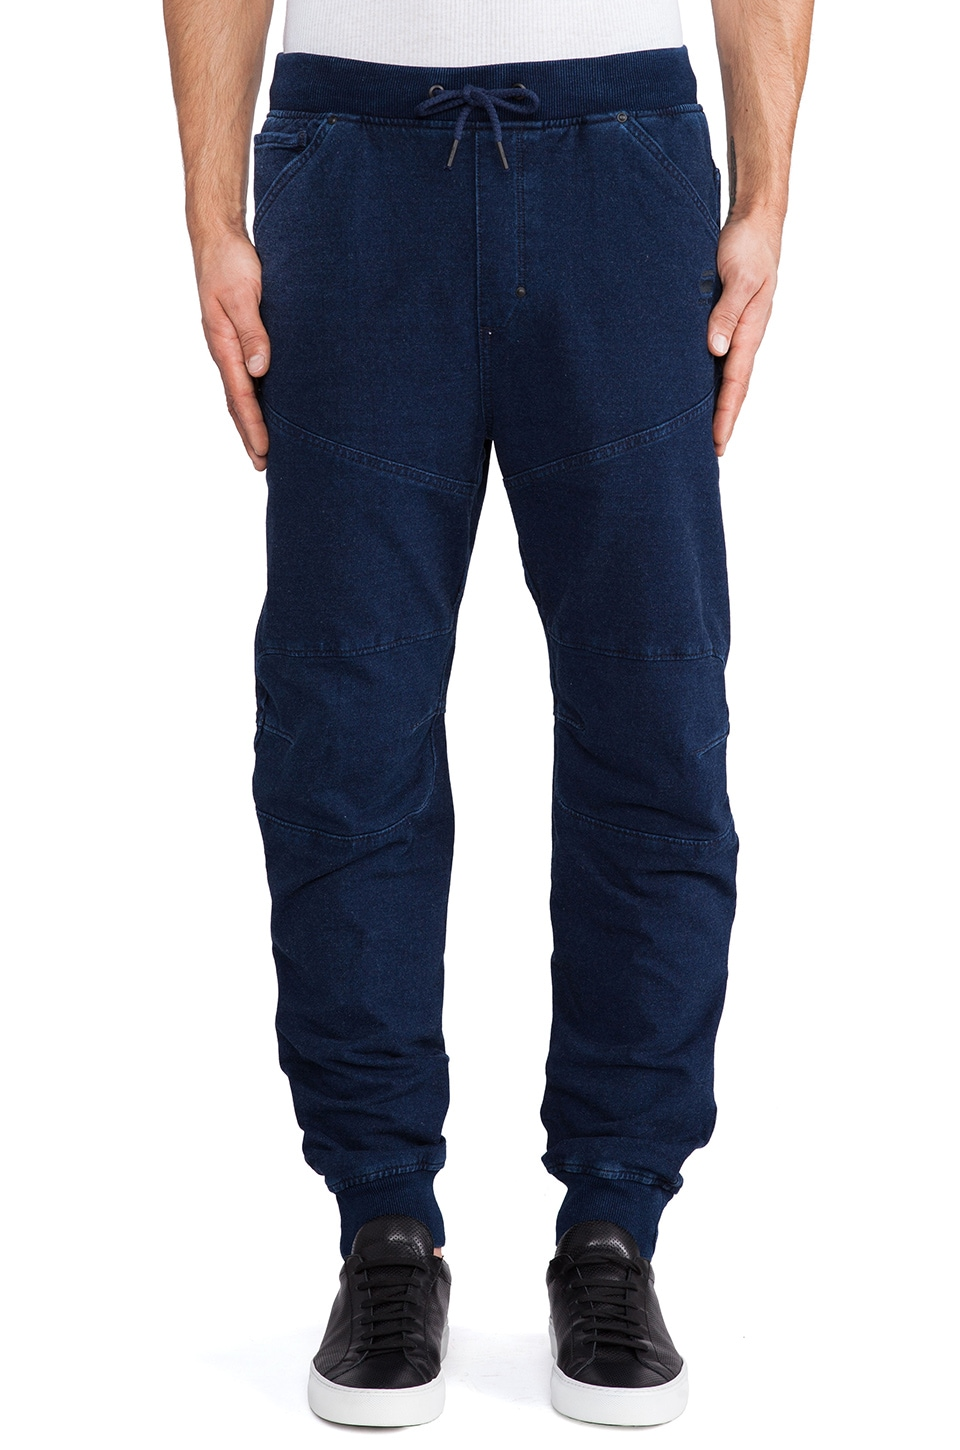 G-Star Kensetsu Sweatpant in Dark Aged